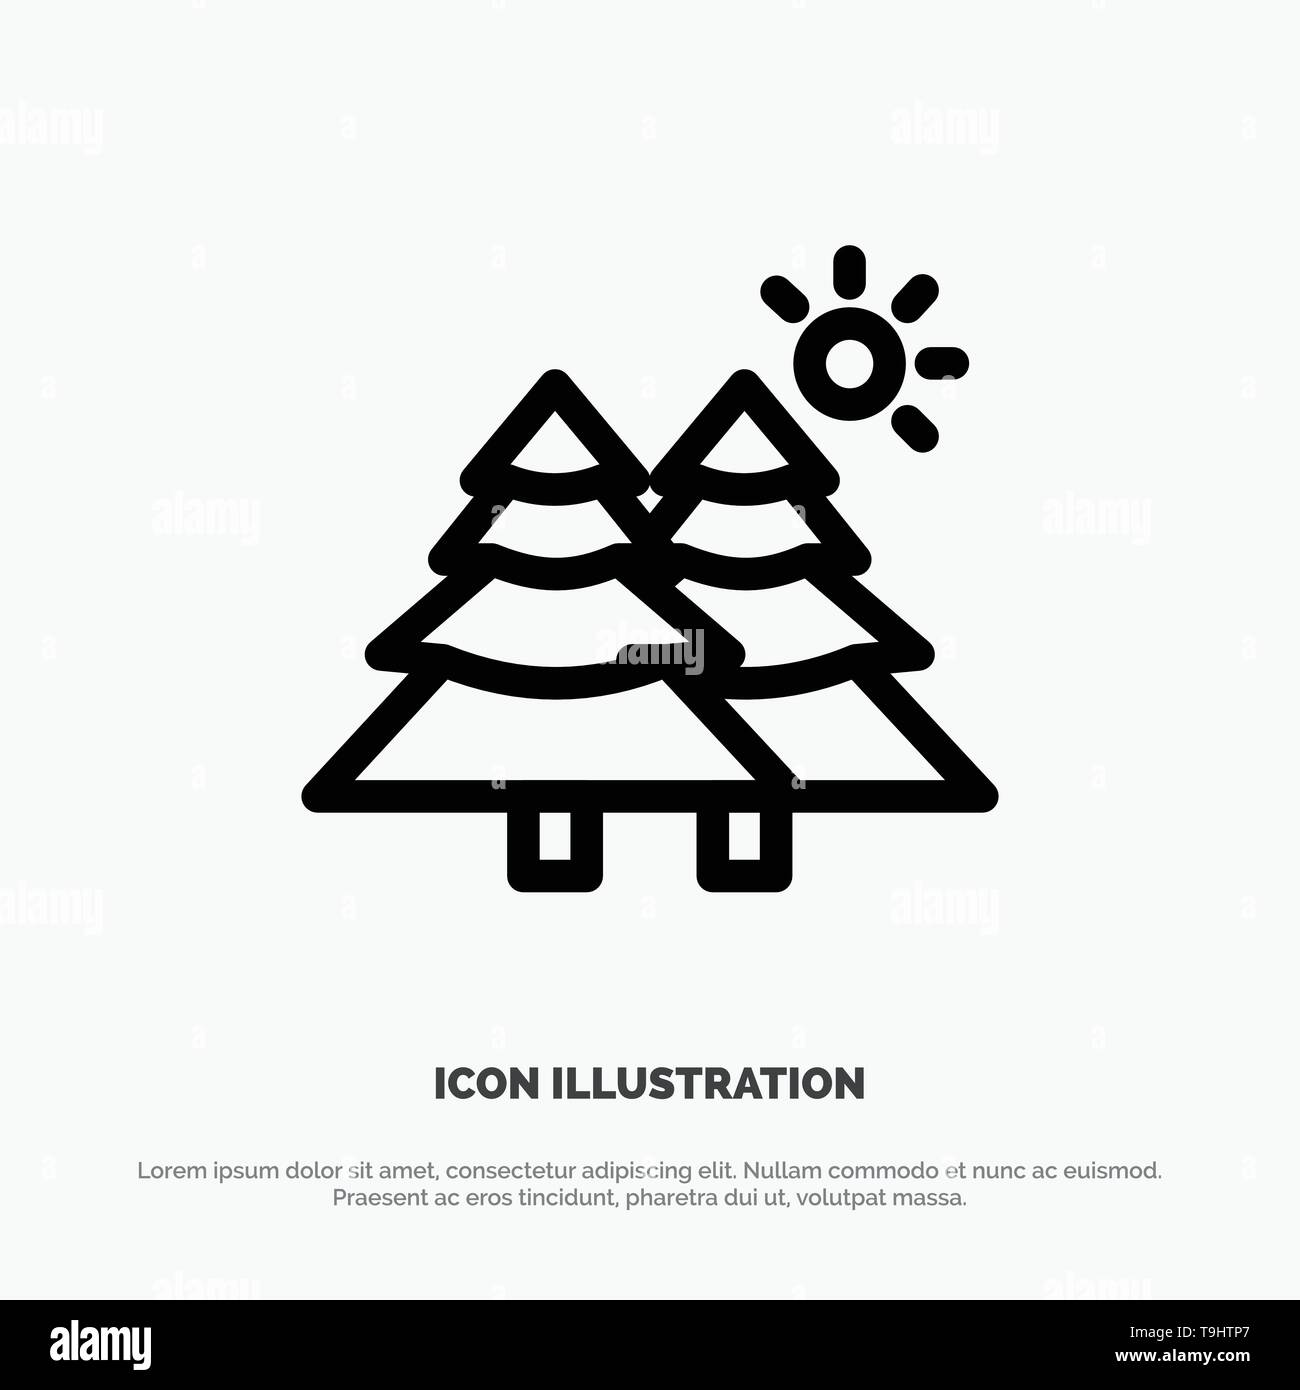 Fir, Forest, Nature, Trees Vector Line Icon - Stock Image